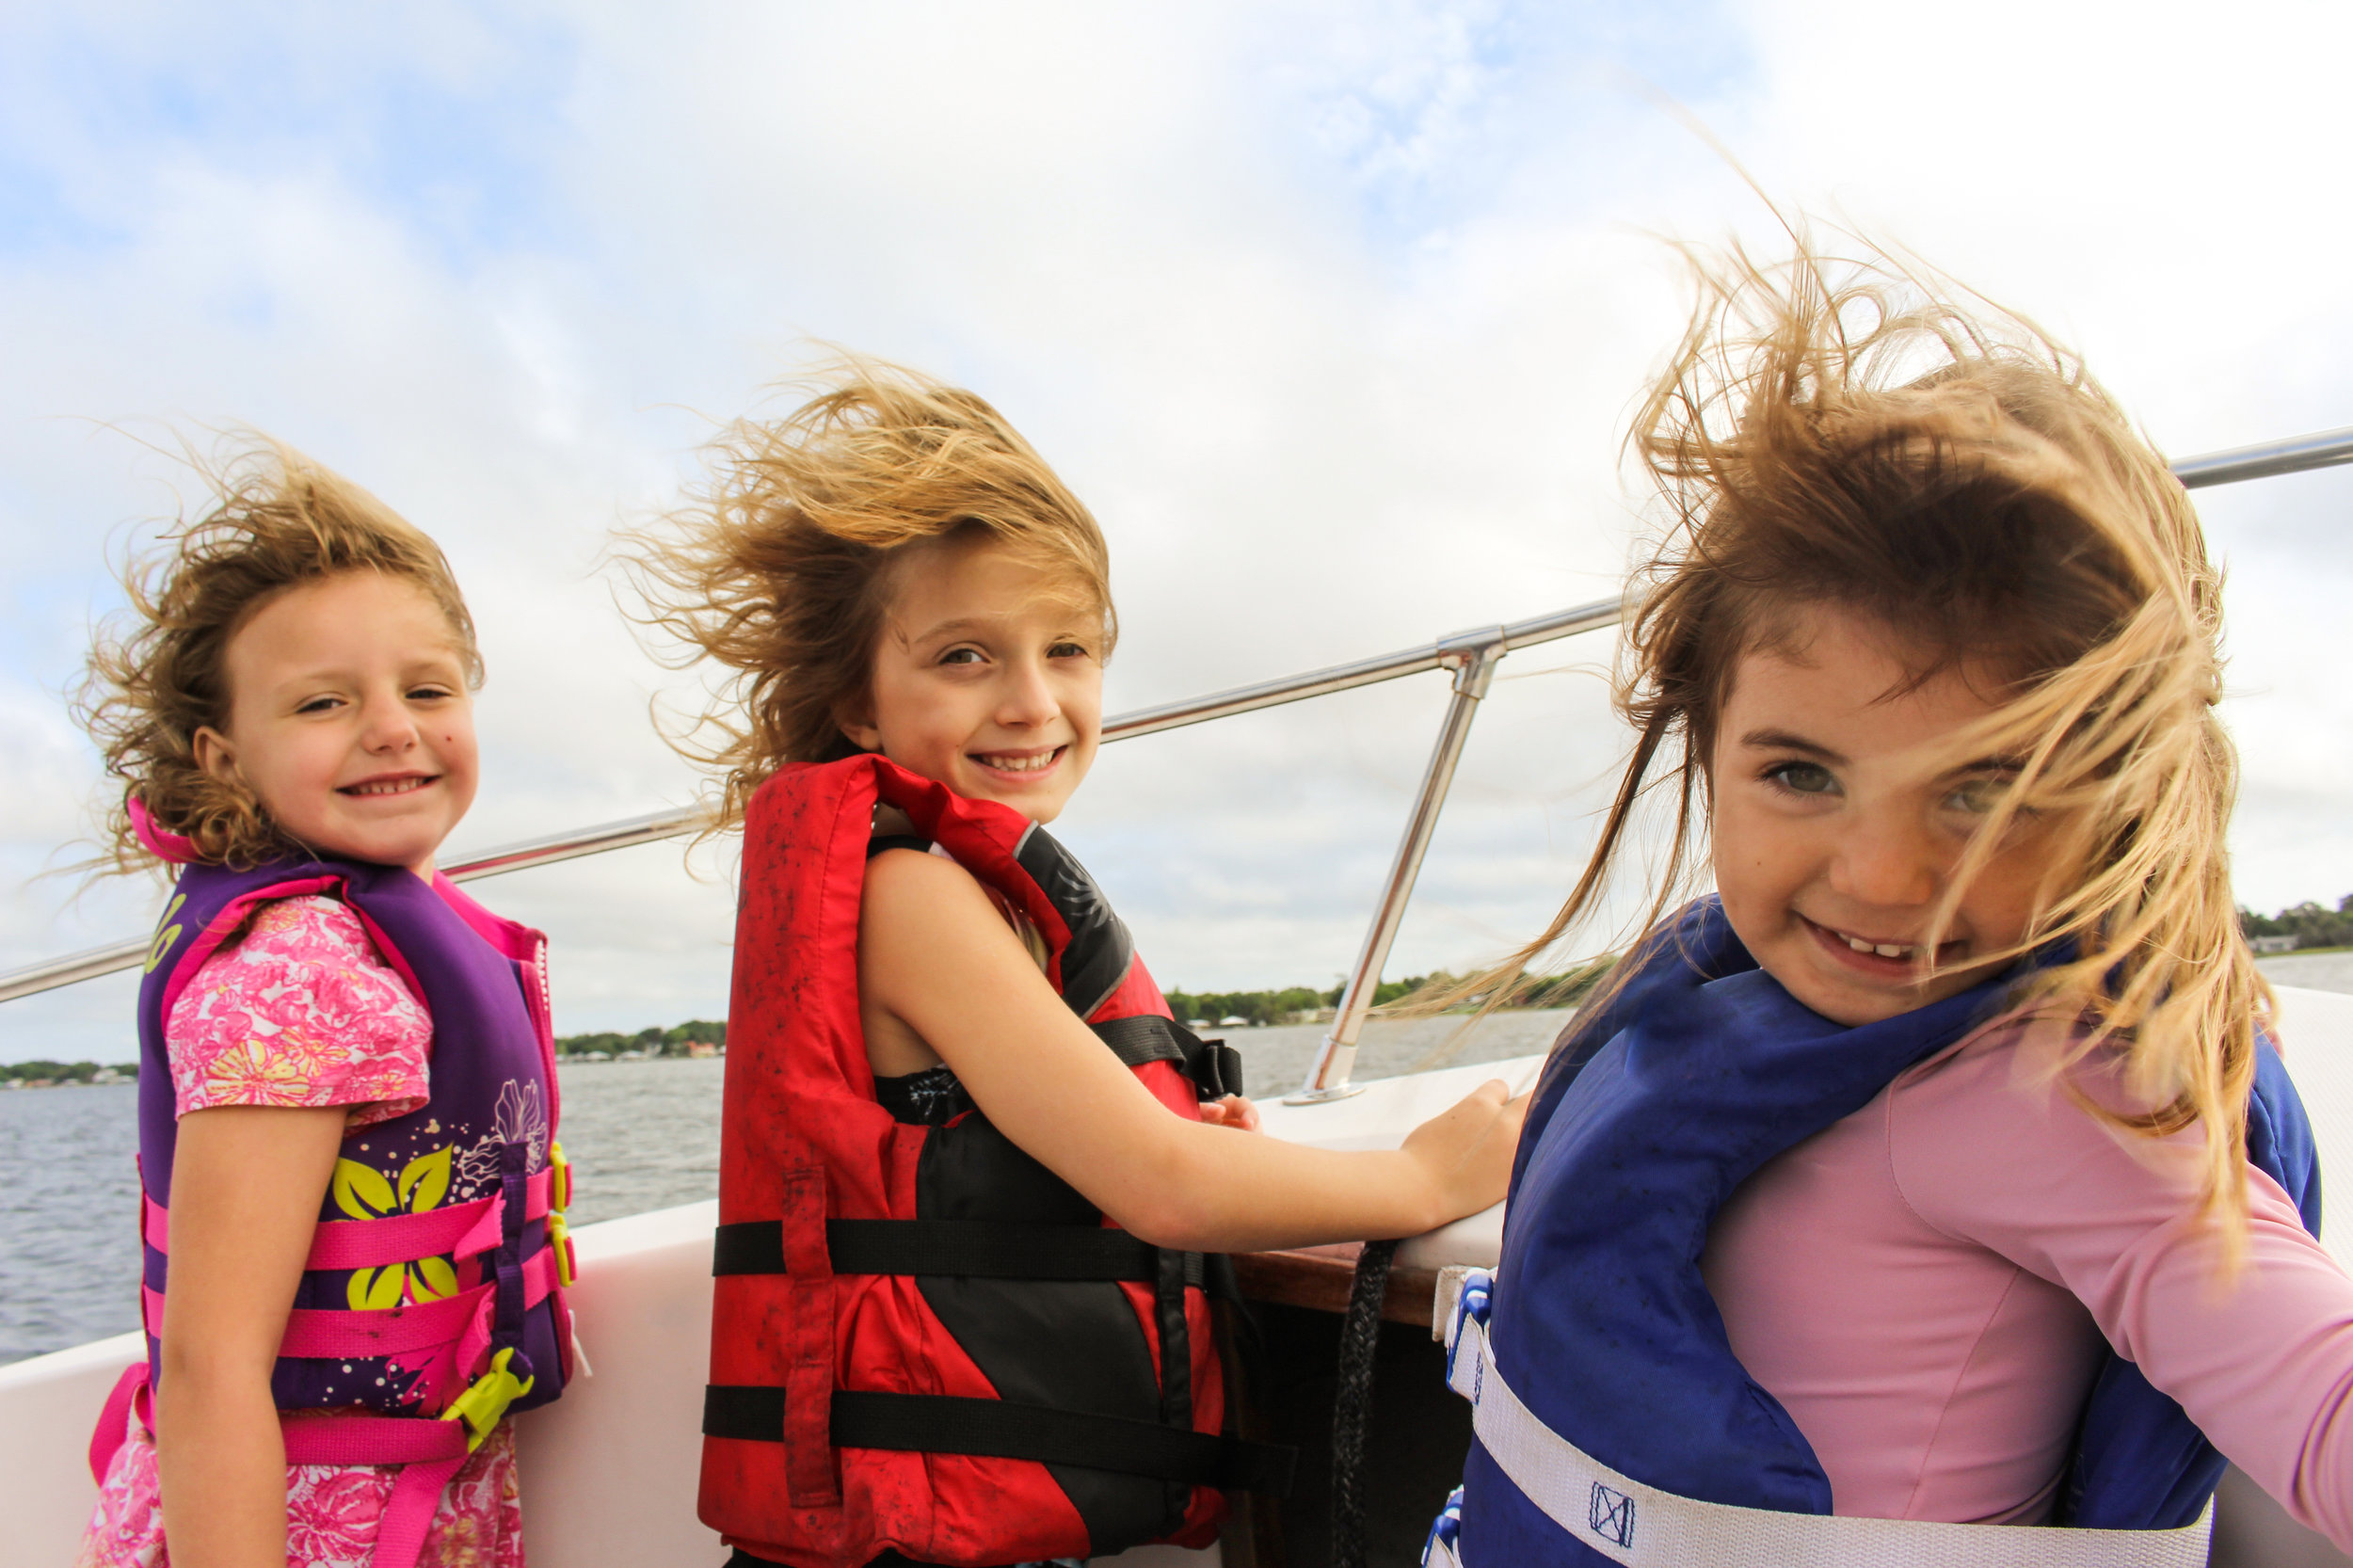 - Family & FriendsSwim, Relax, have FUN! Our boats are perfect for a day on the water with your family or friends.Create your vacation memories boating our beautiful waters!